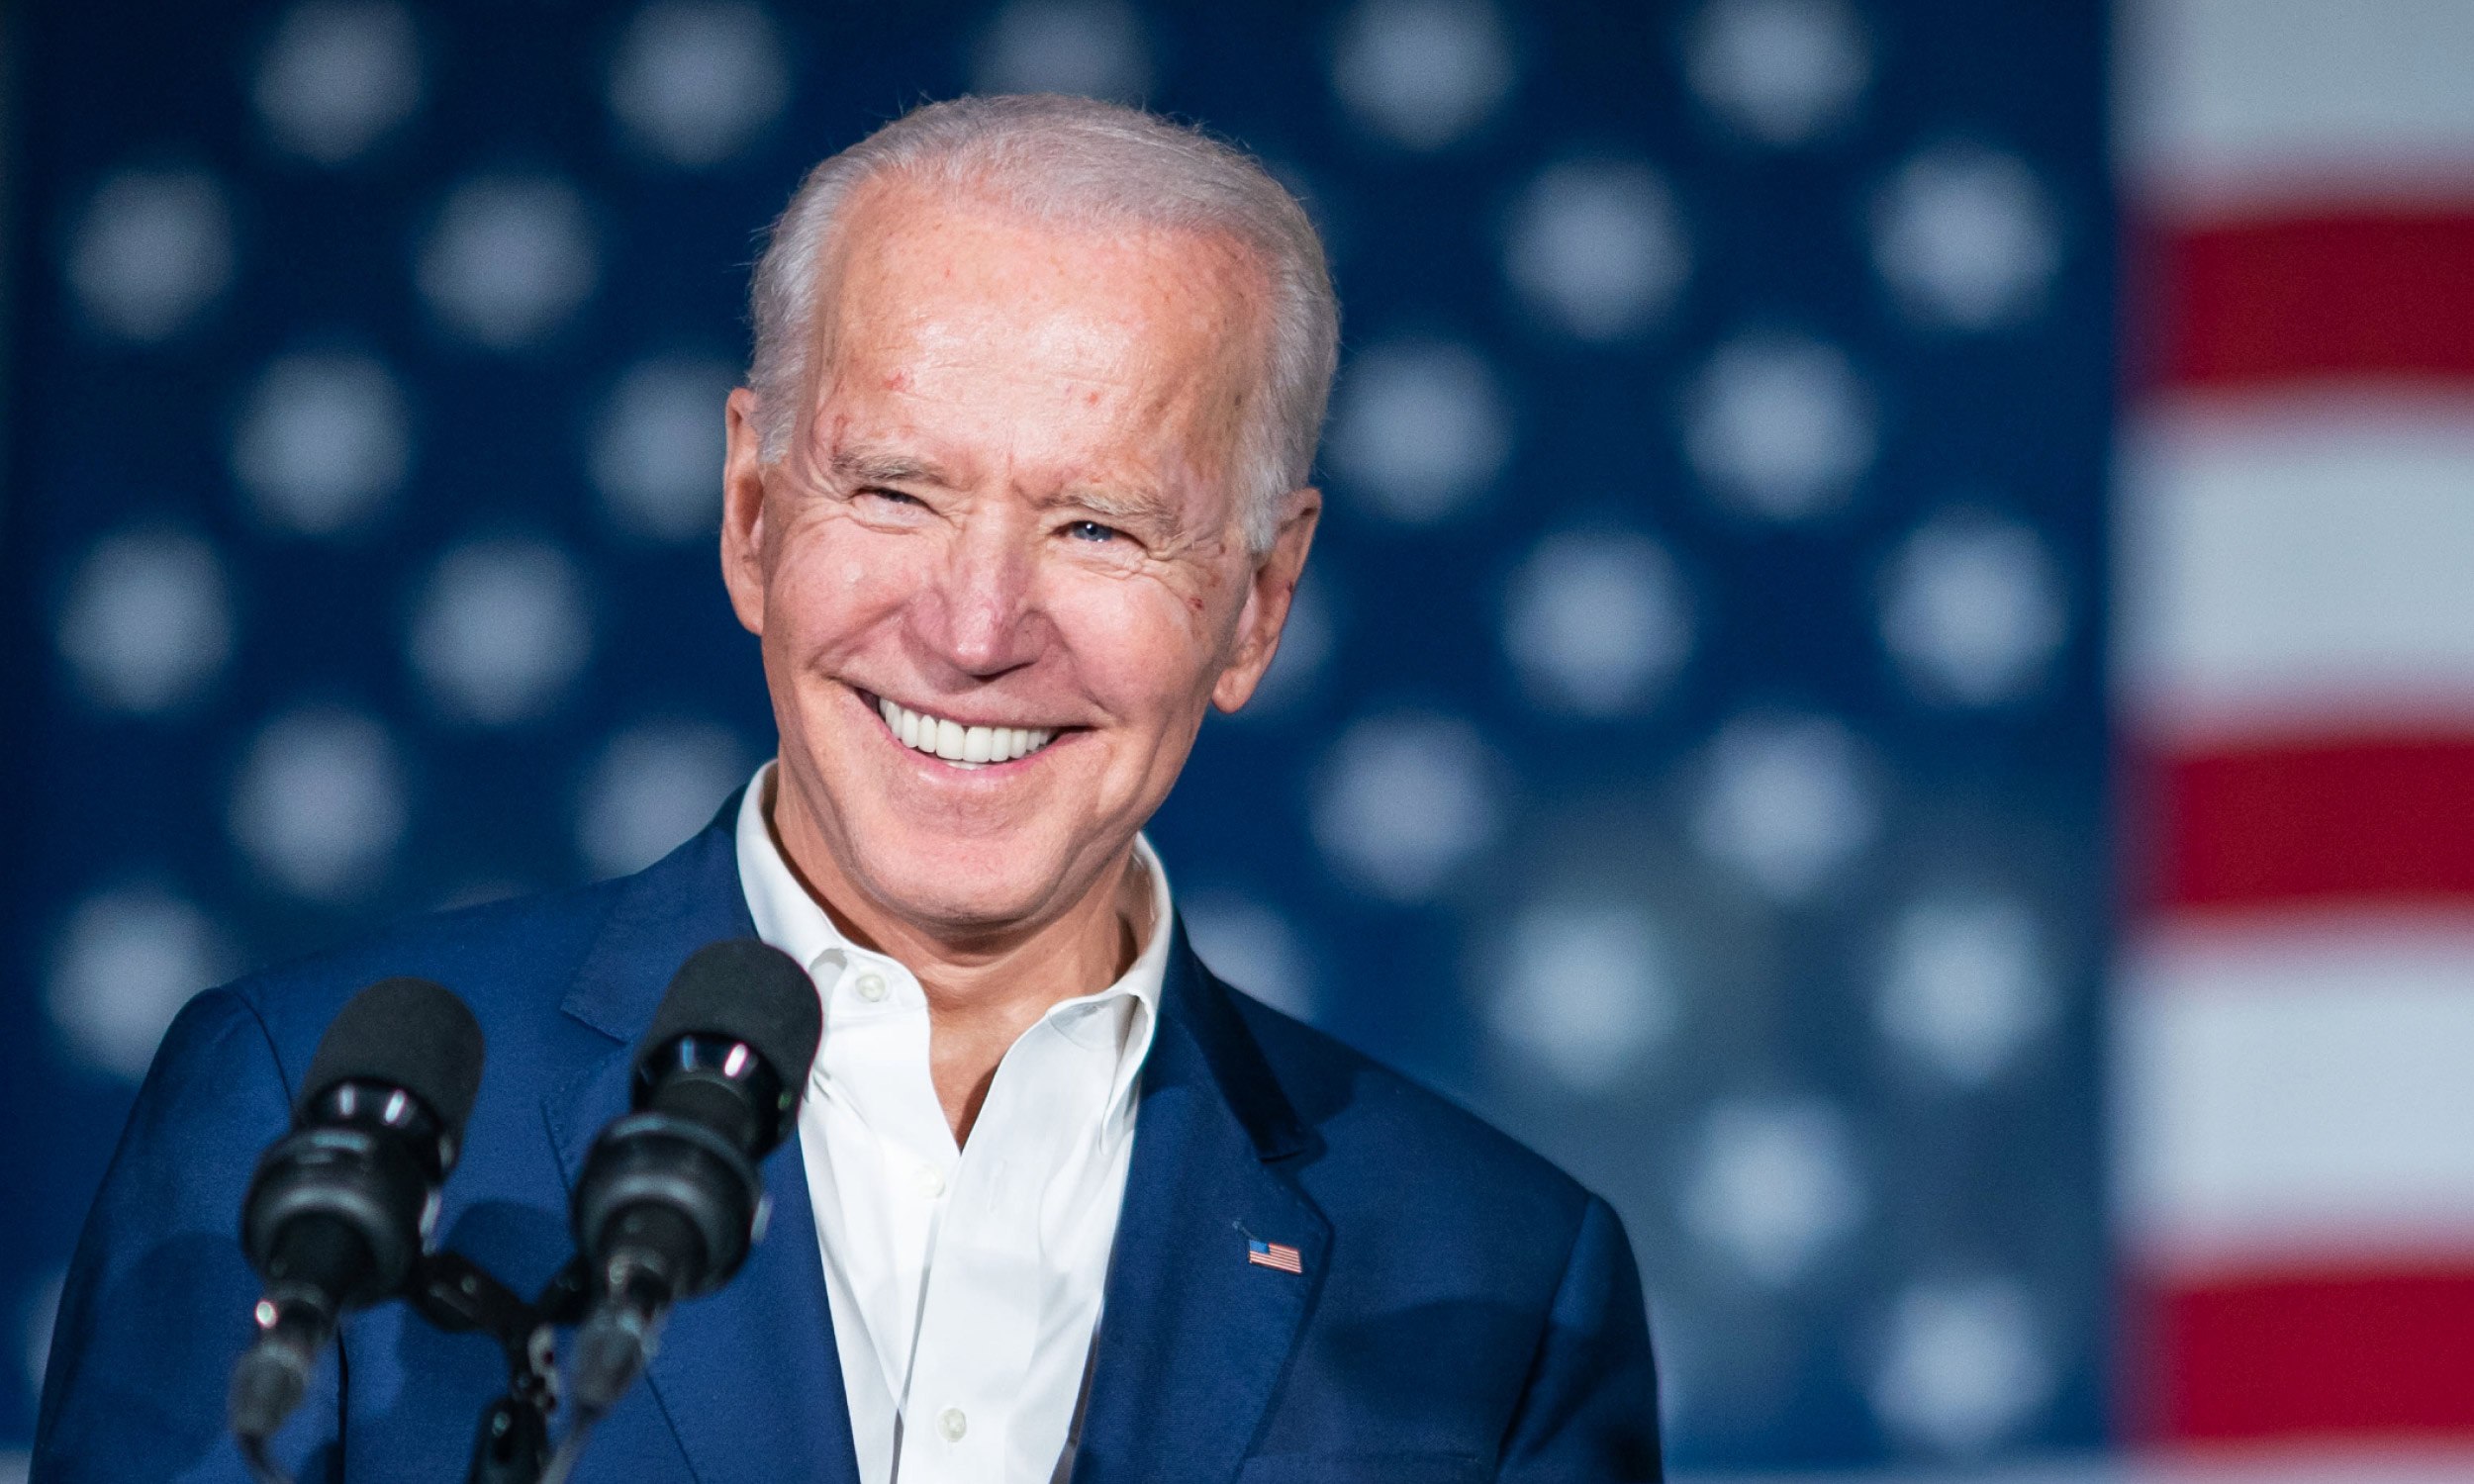 Biden's plans to visit Eastern Europe become known